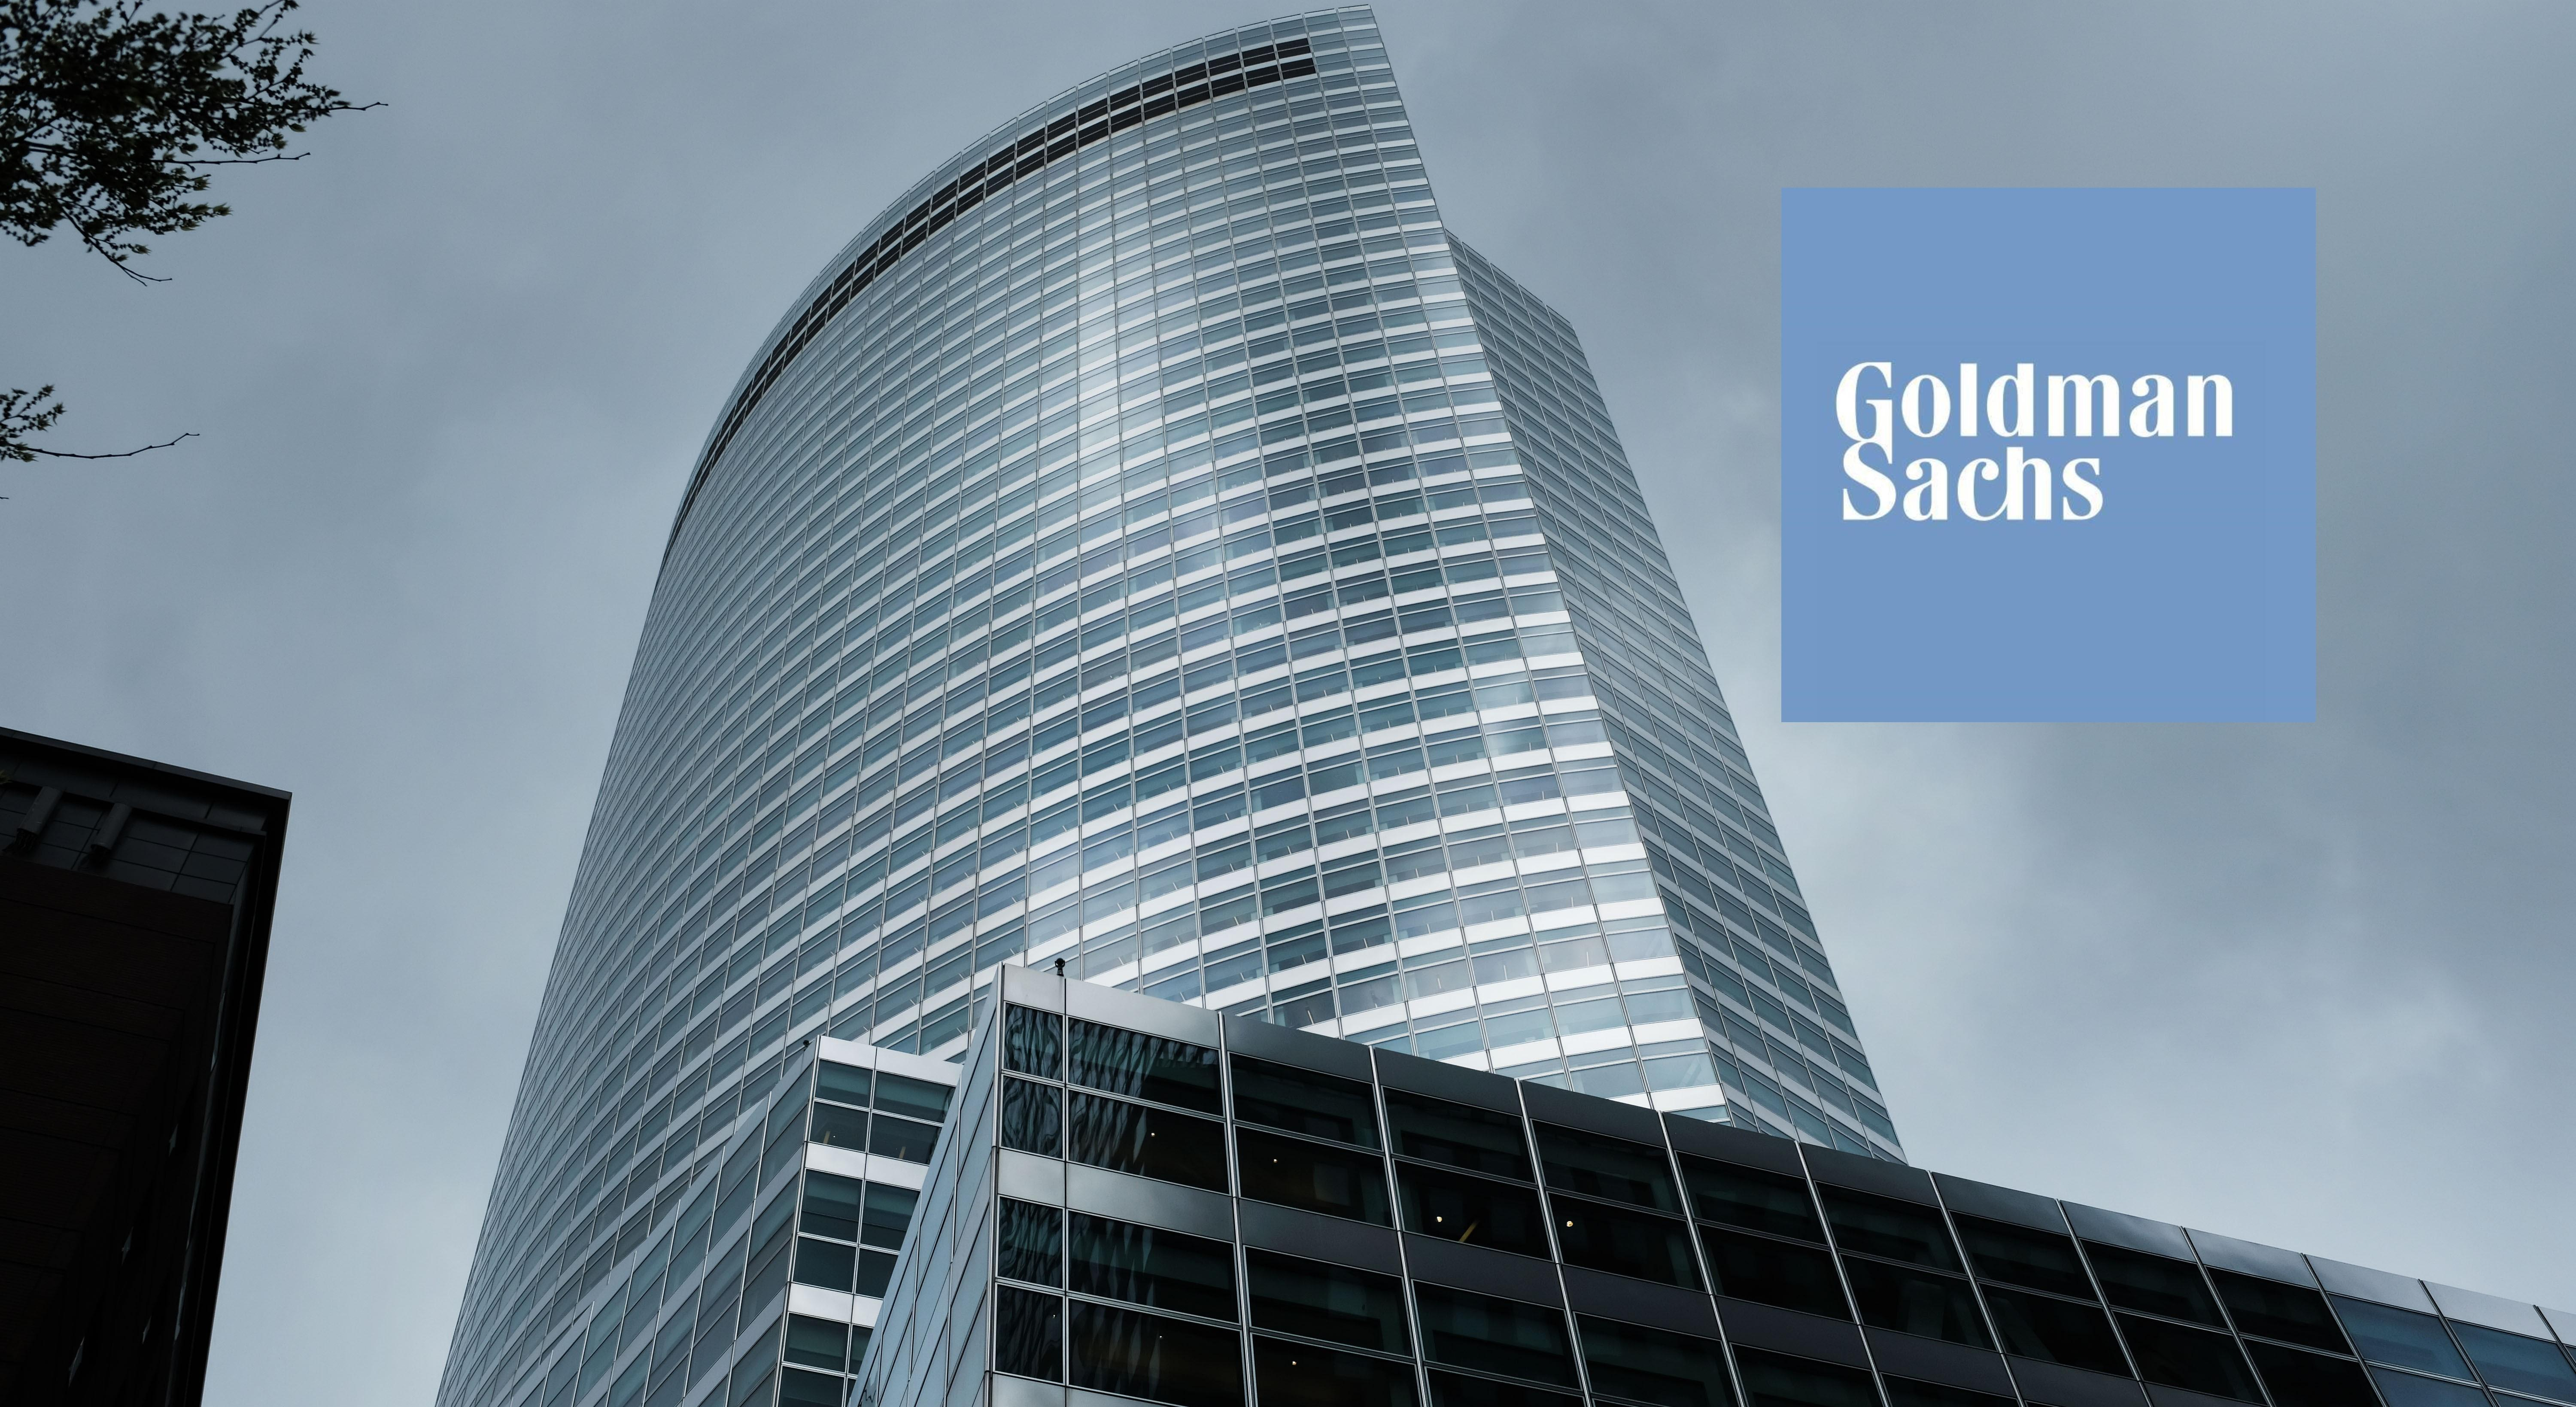 Goldman Sachs building with company logo over it